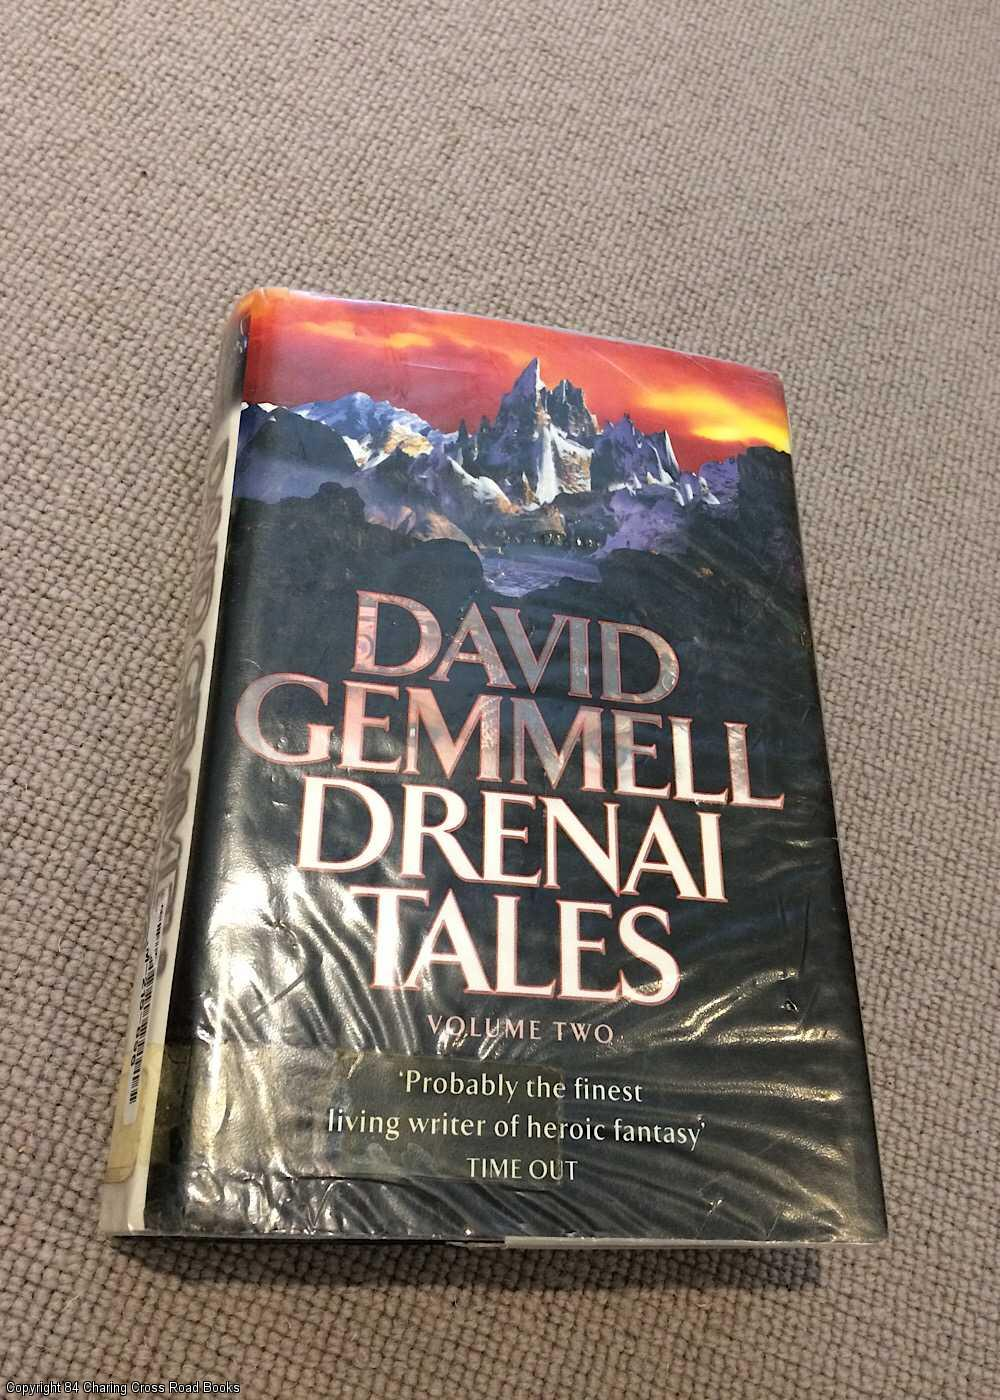 GEMMELL, DAVID - Drenai Tales  Vol 2: Quest for Lost Heroes; Waylander II - In the Realm of the Wolf; The First Chronicles of Druss the Legend (1st ed hardback)